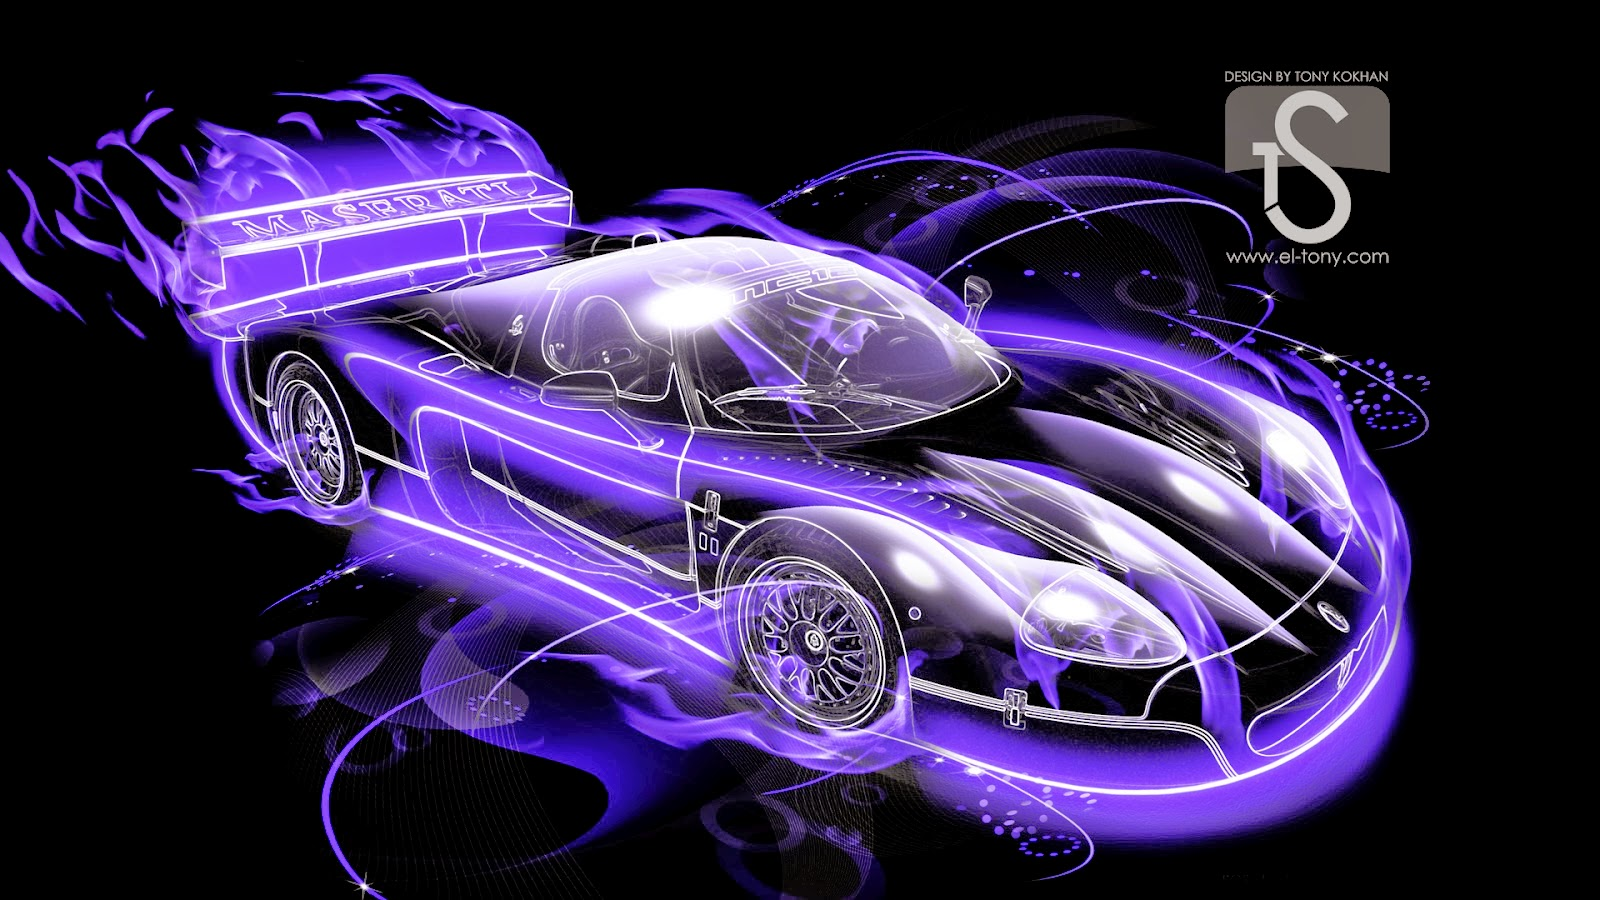 Fire 3d Wallpapers Of Cars For Desktop